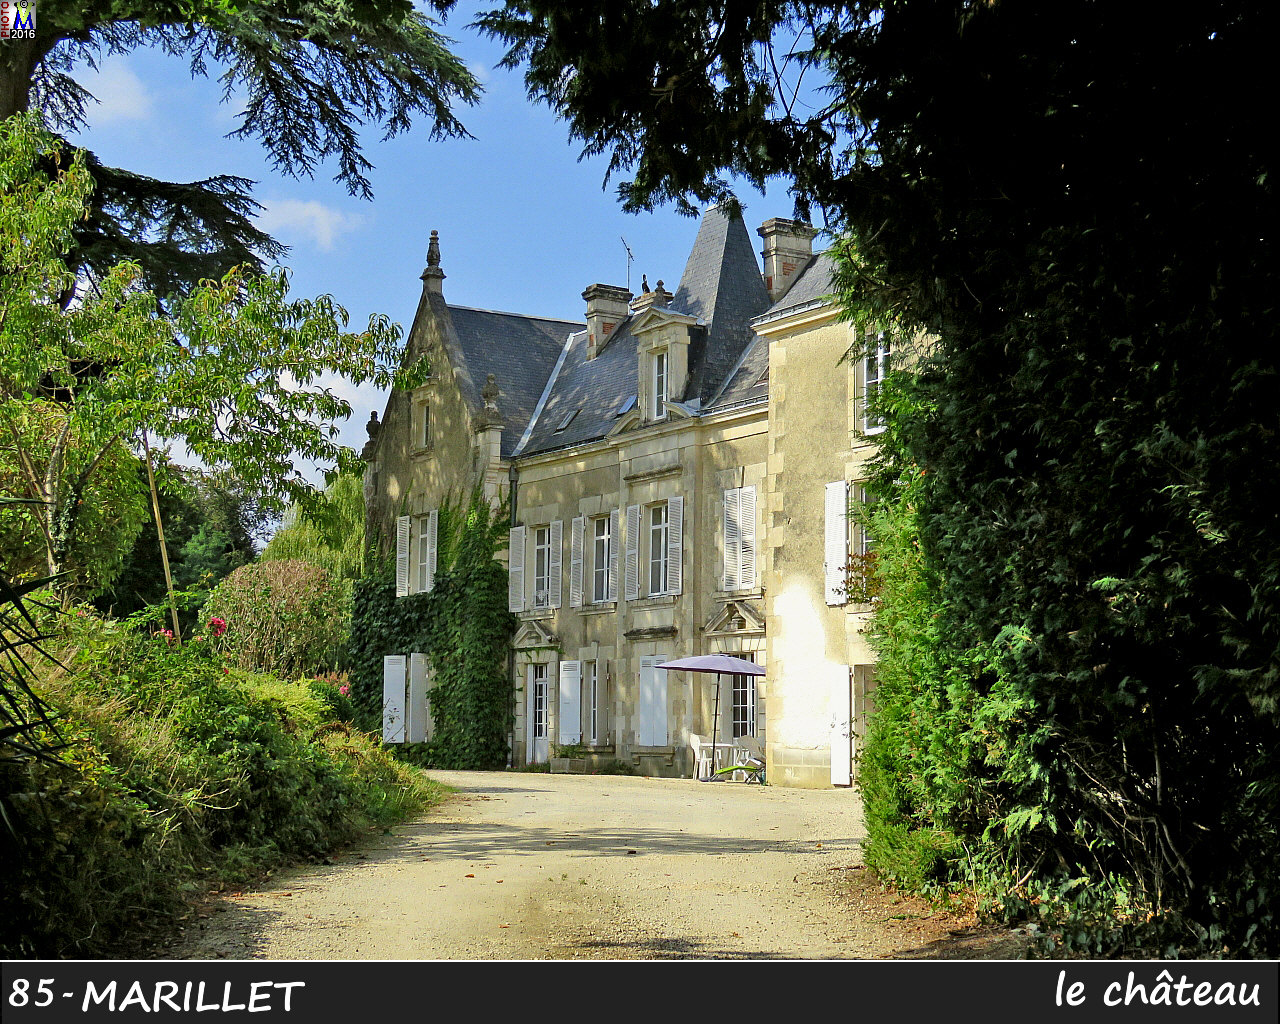 85MARILLET_chateau_100.jpg